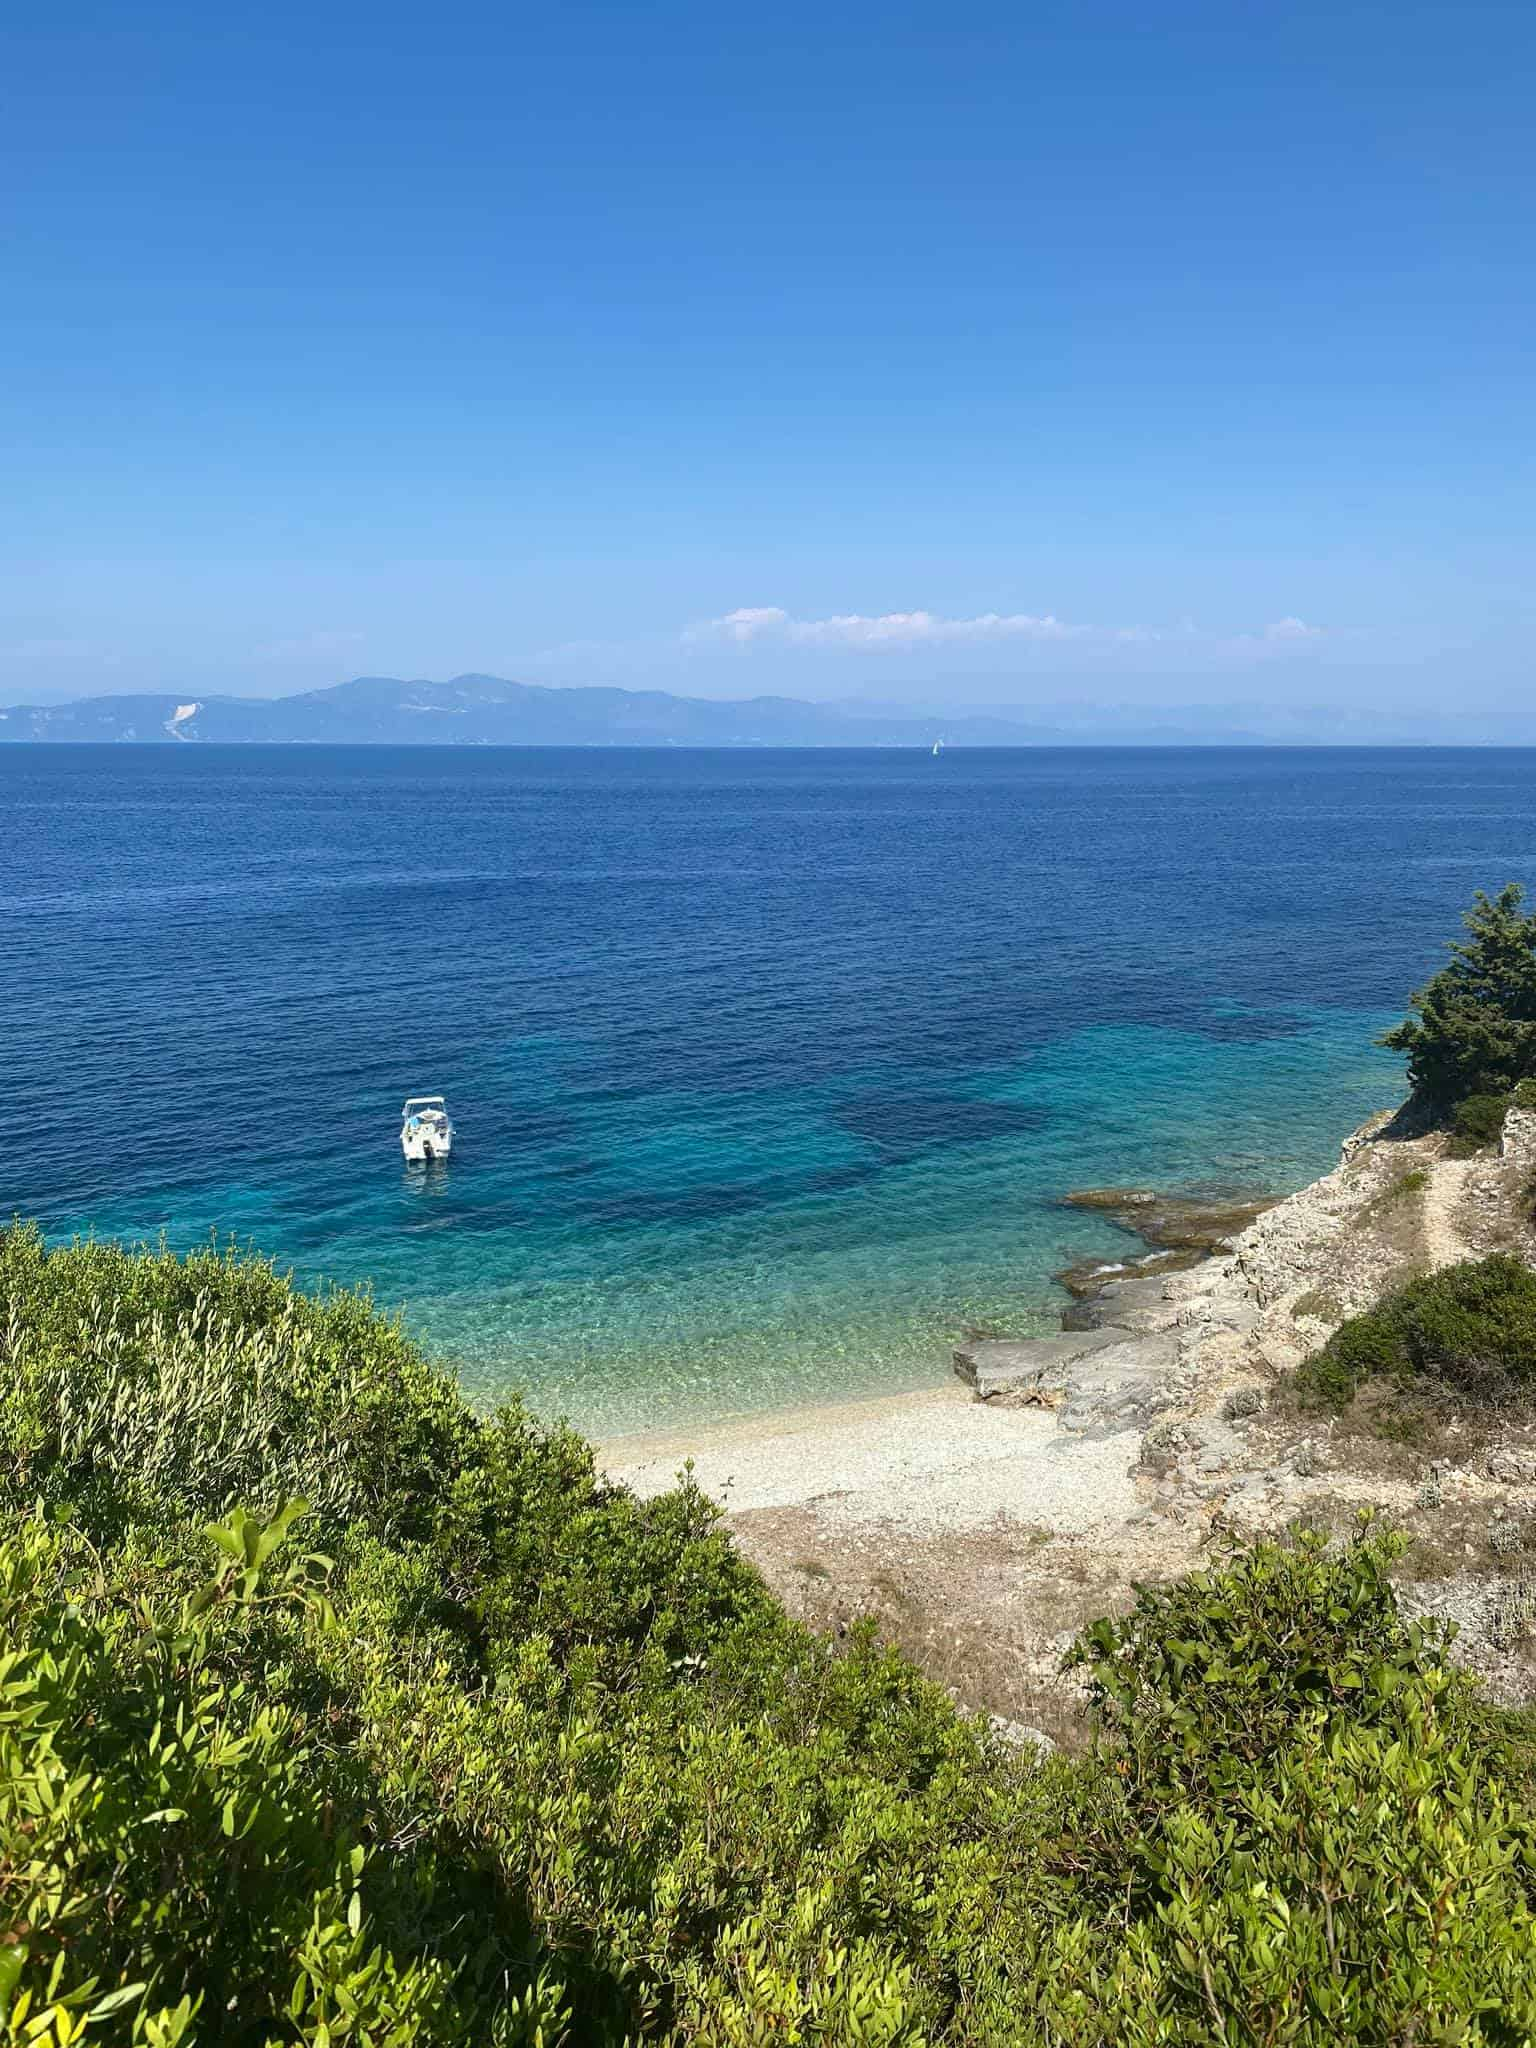 Greek mythology stories: The island of Paxos